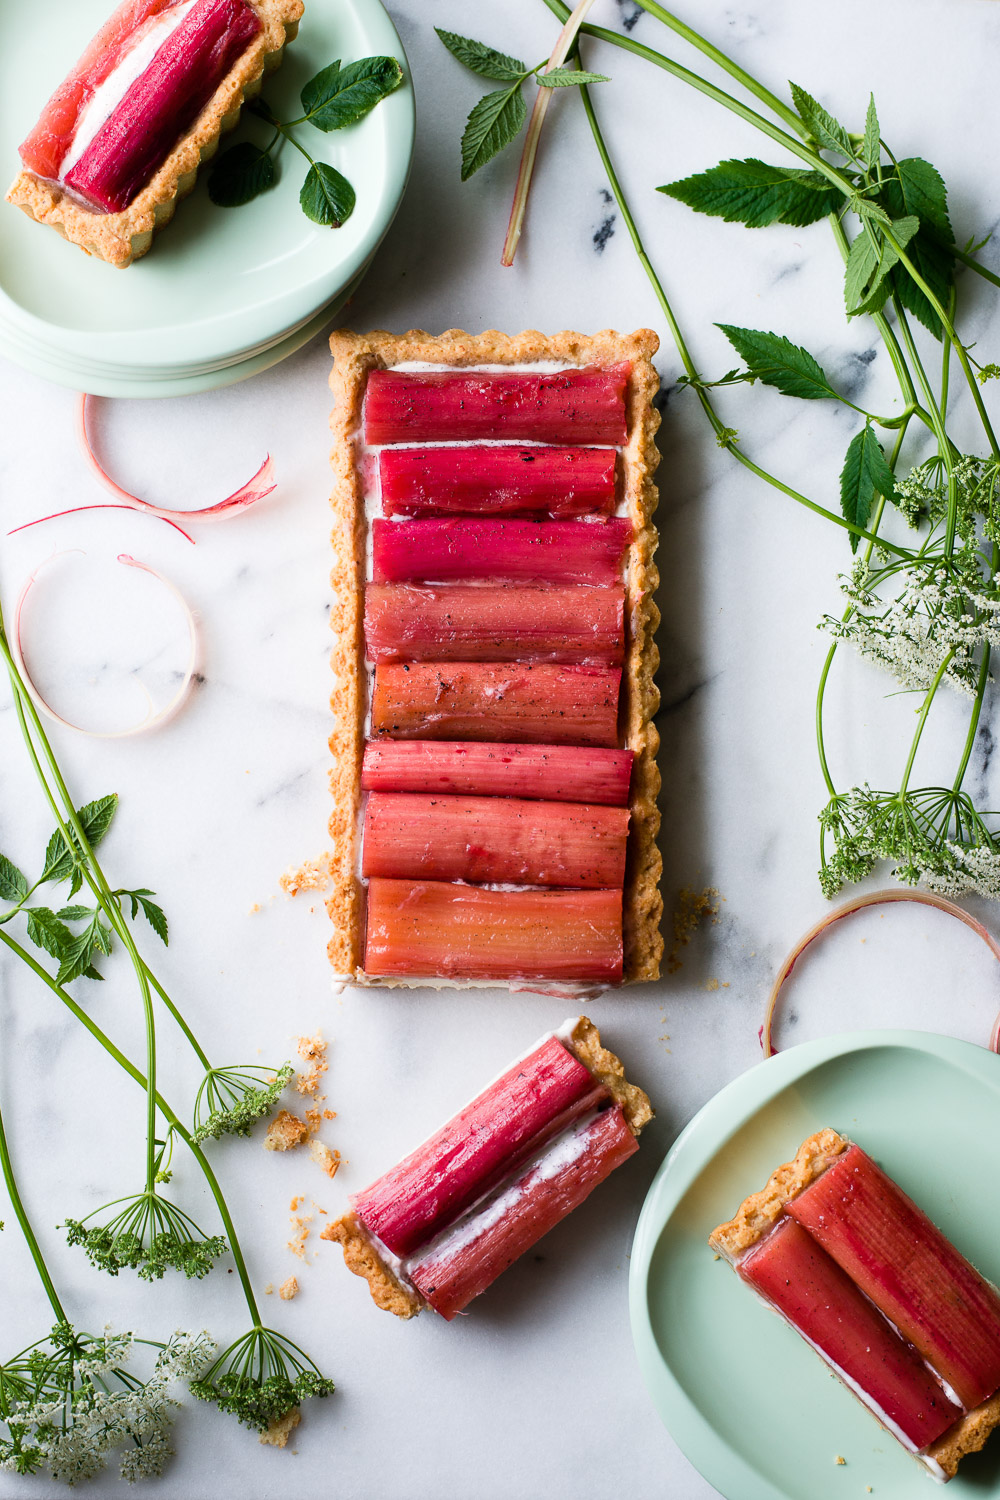 Rhubarb Yogurt Tart for Stonyfield Yogurt